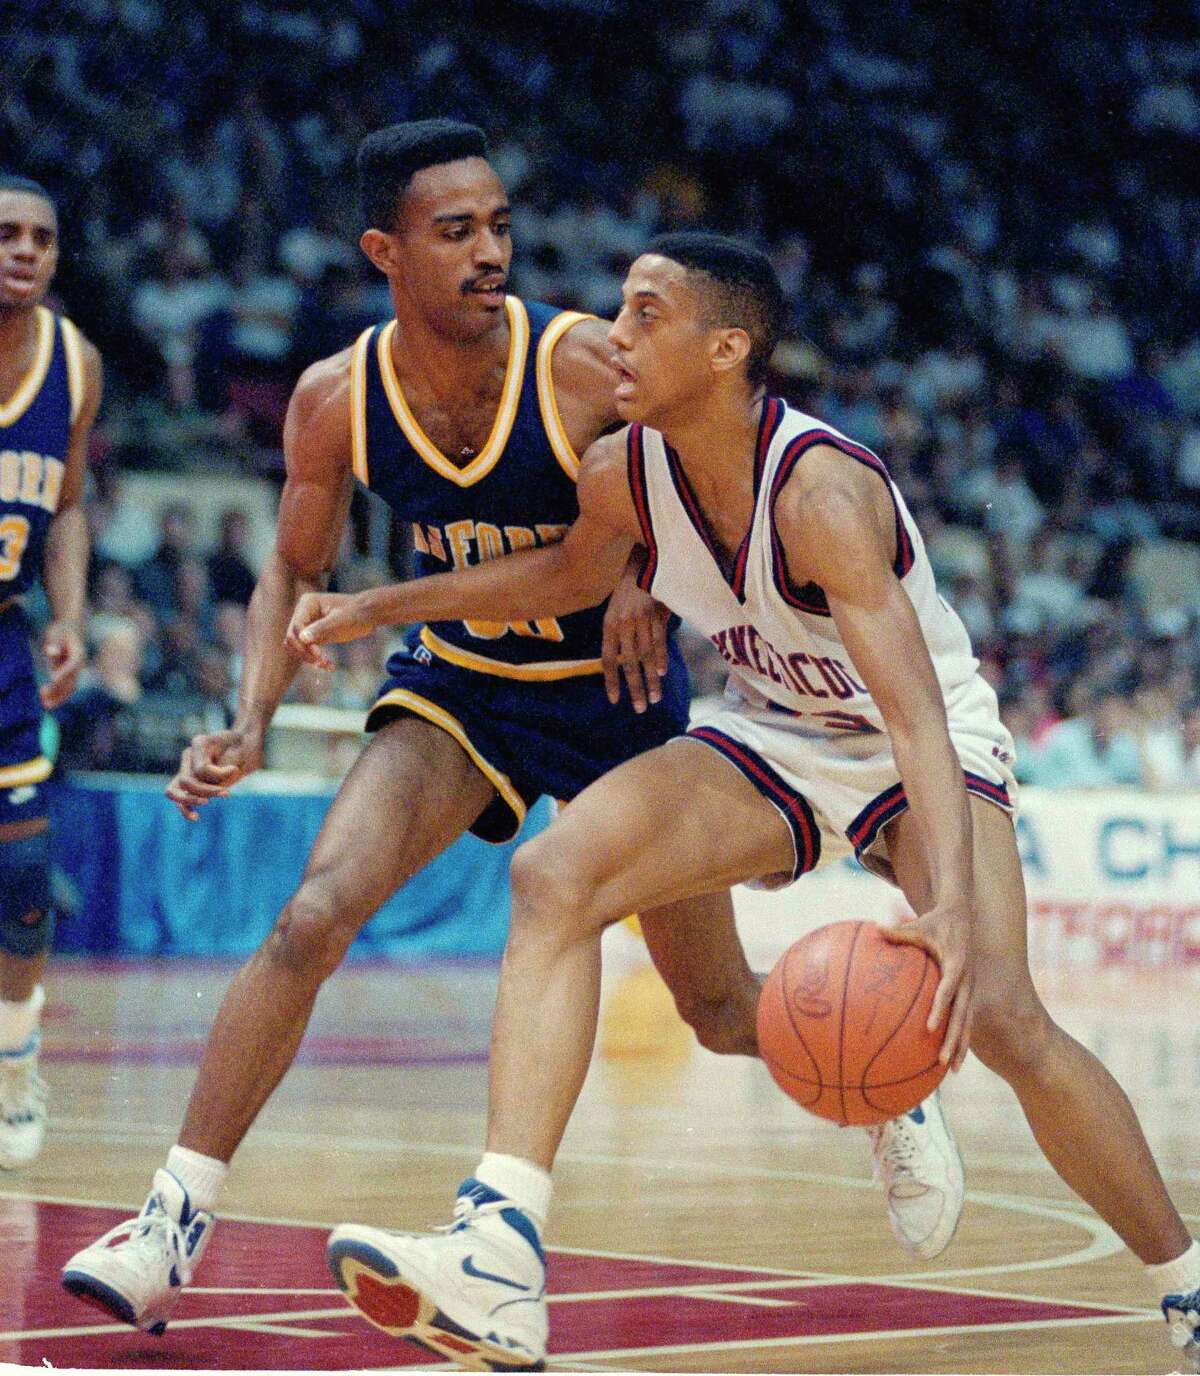 UConn's Tate George competes against California during the second round of the 1990 NCAA tournament.